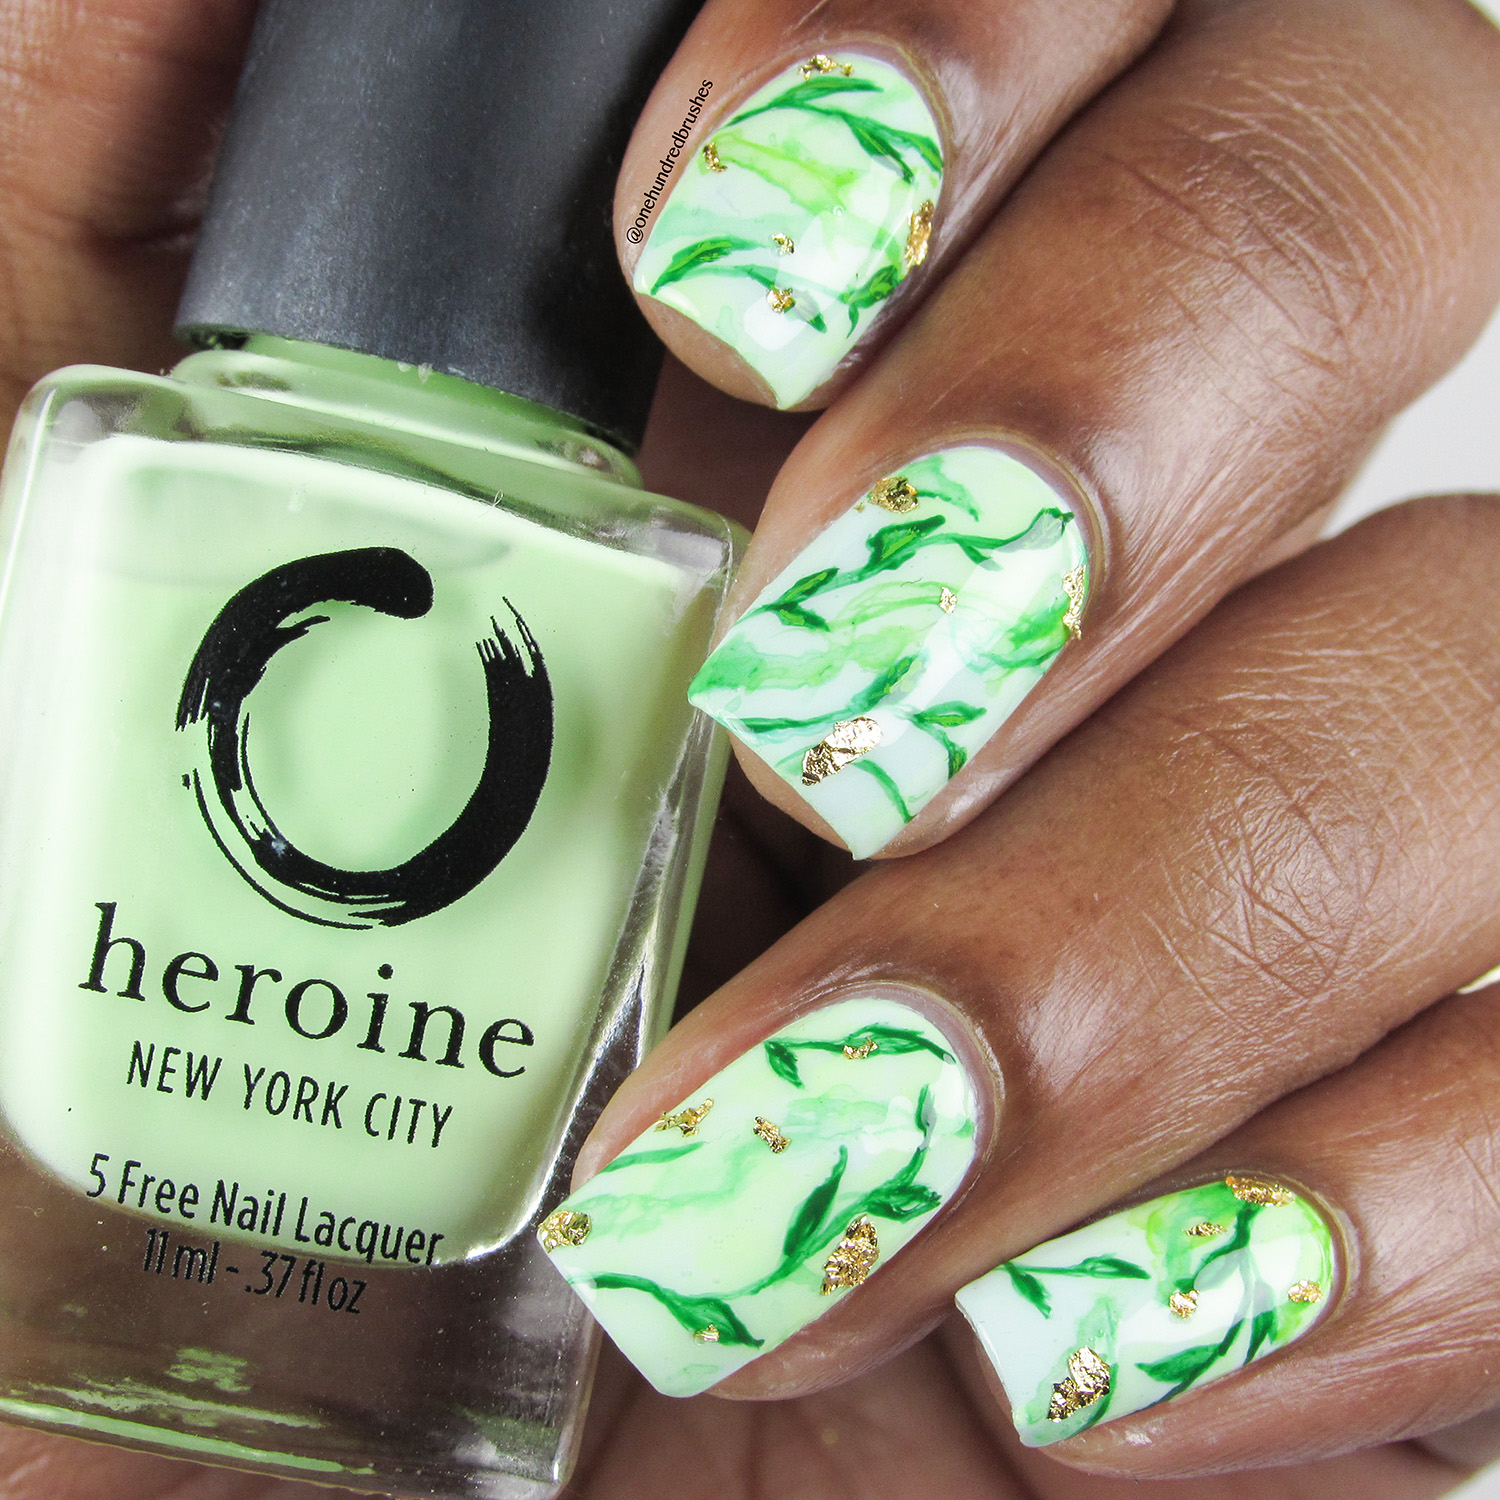 Leaves and Gold Leaf on Green Gradient - Bottle Front - Heroine NYC - Sublime - Empowermint - leaves - gold